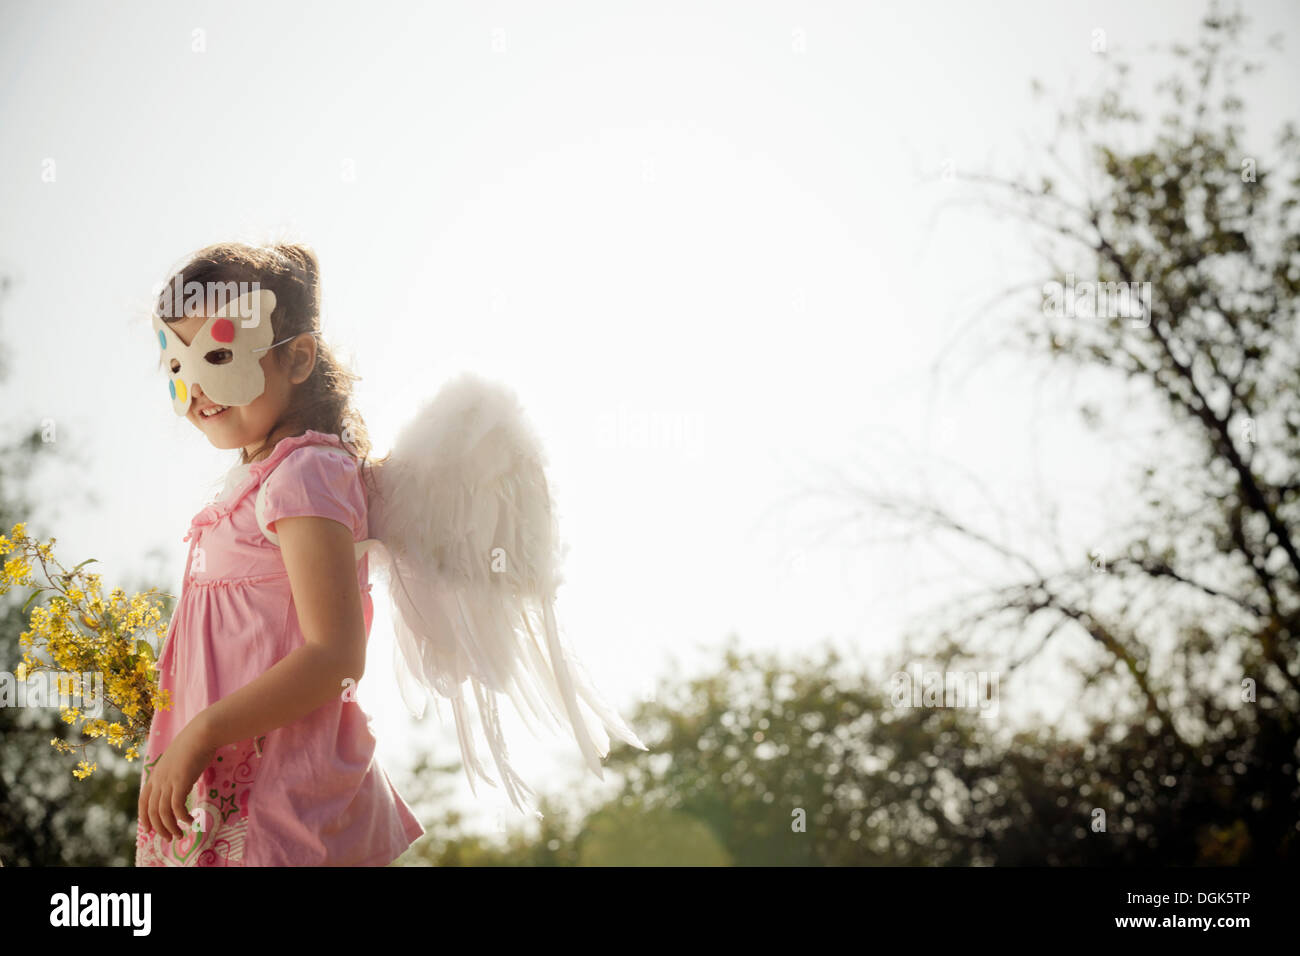 Girl in angel wings and face mask - Stock Image